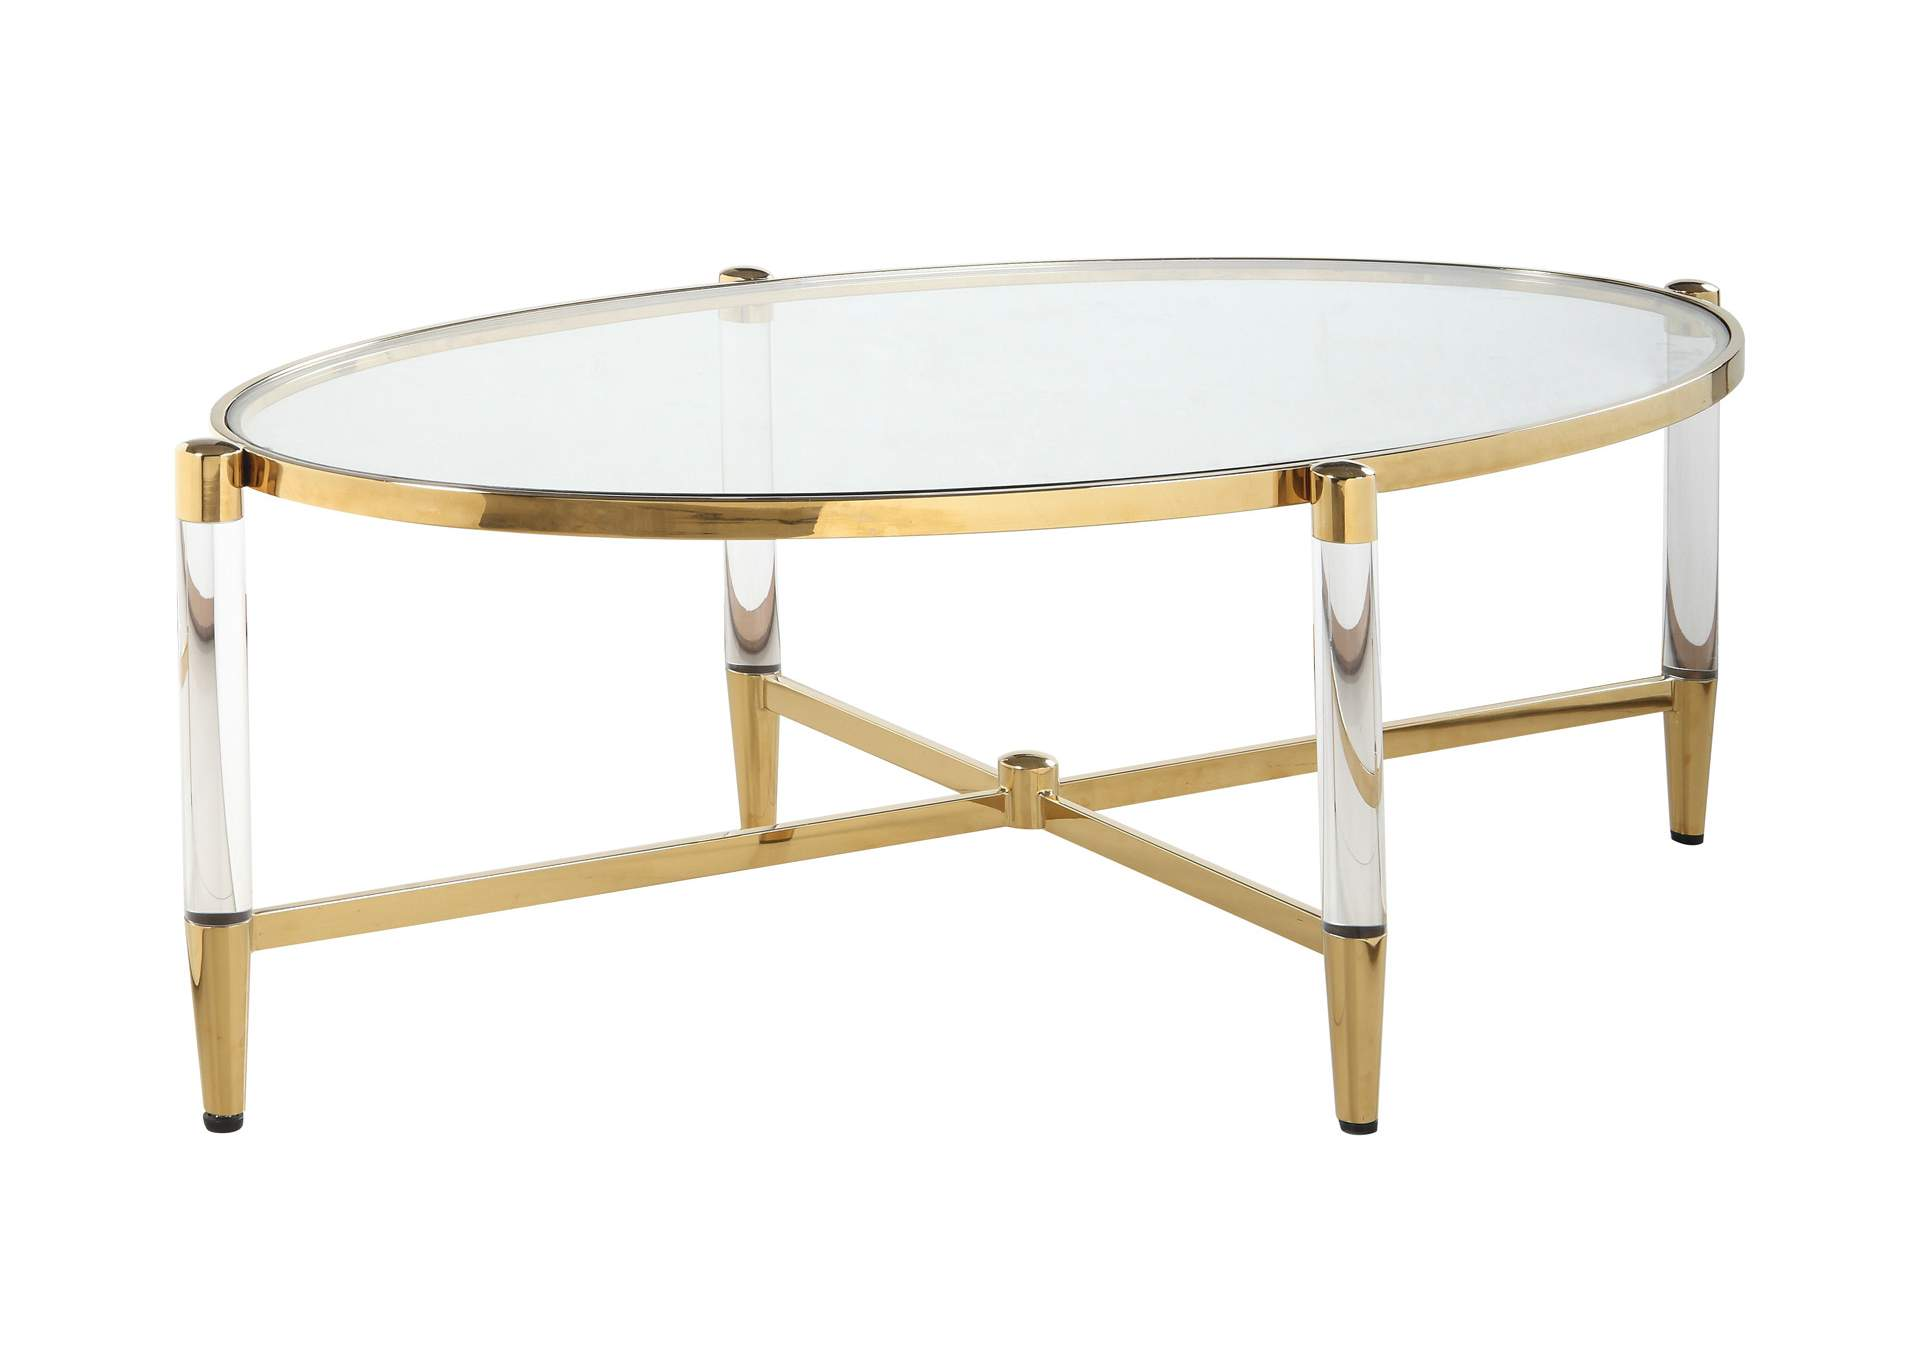 Denali Brass Oval Tempered Glass Cocktail Table,Chintaly Imports